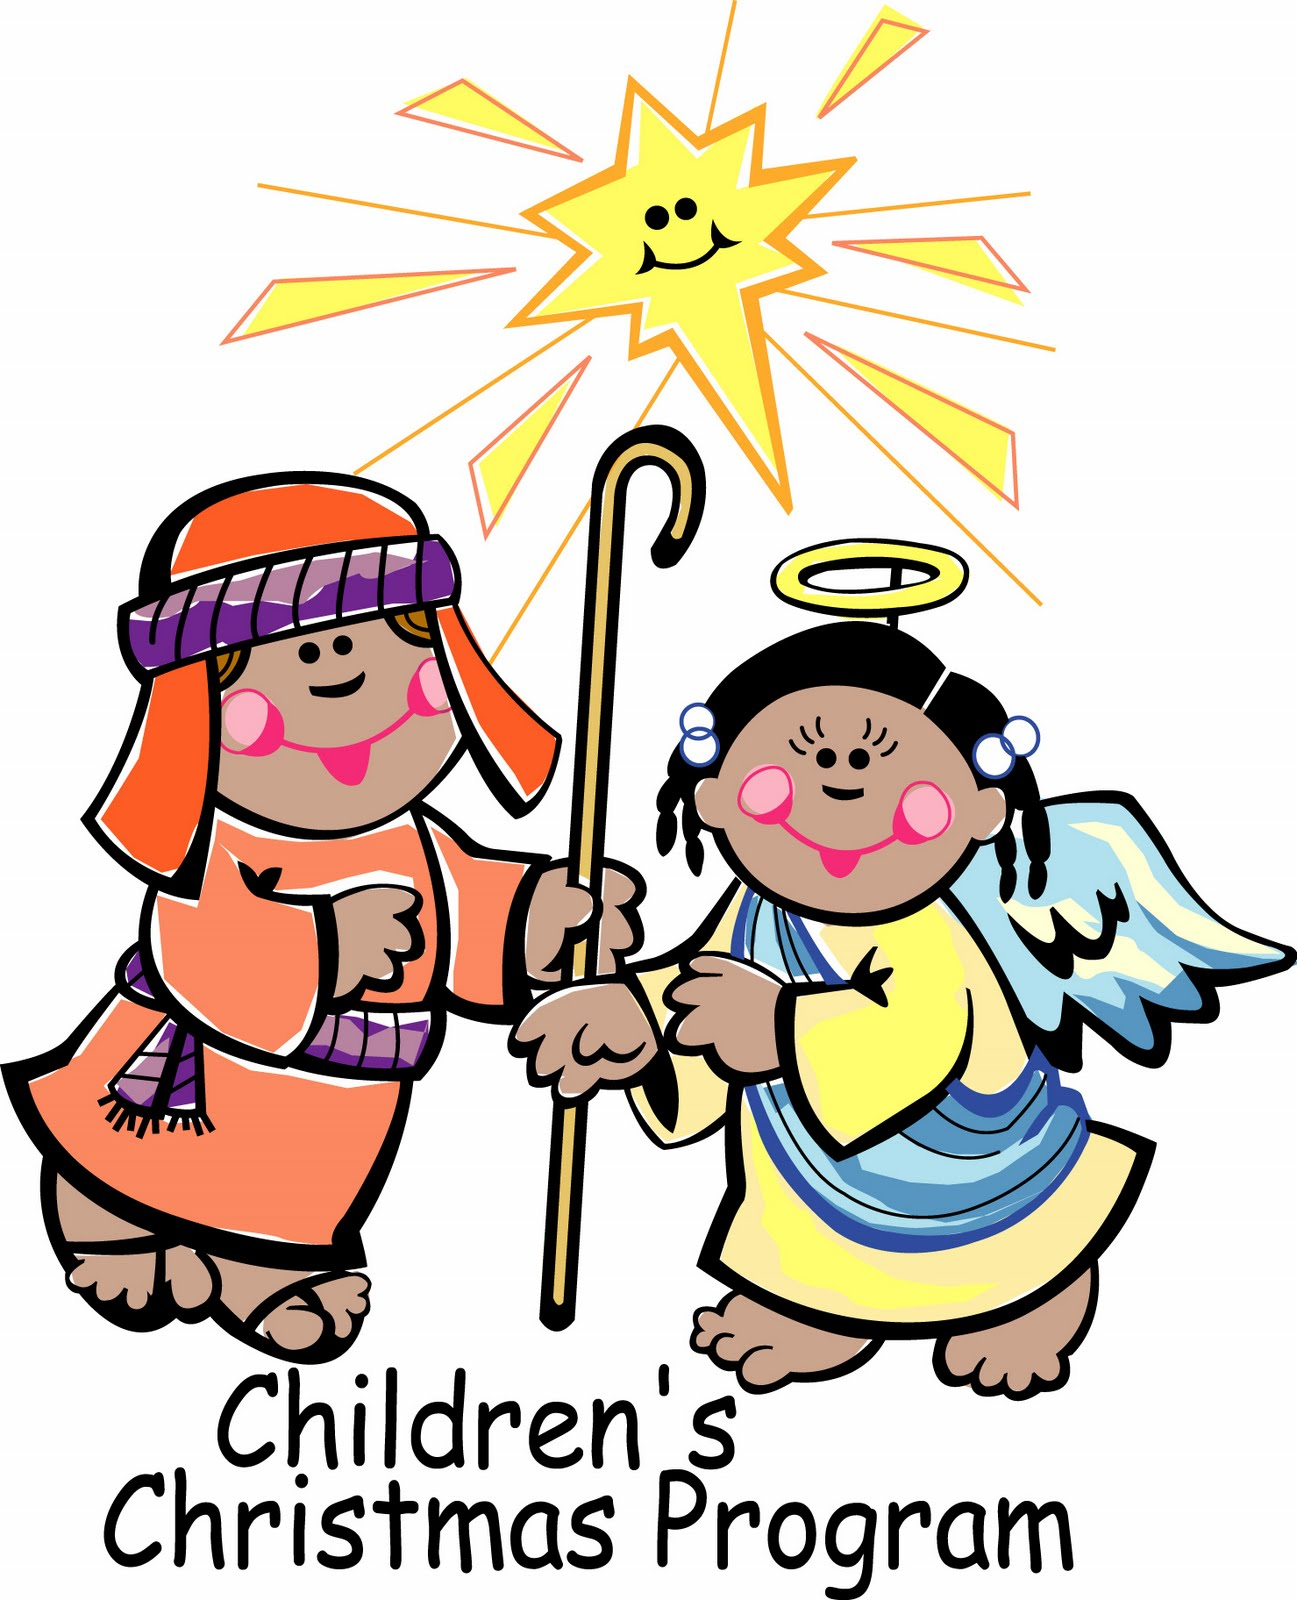 Jesus Christmas Clipart at GetDrawings.com | Free for personal use ...